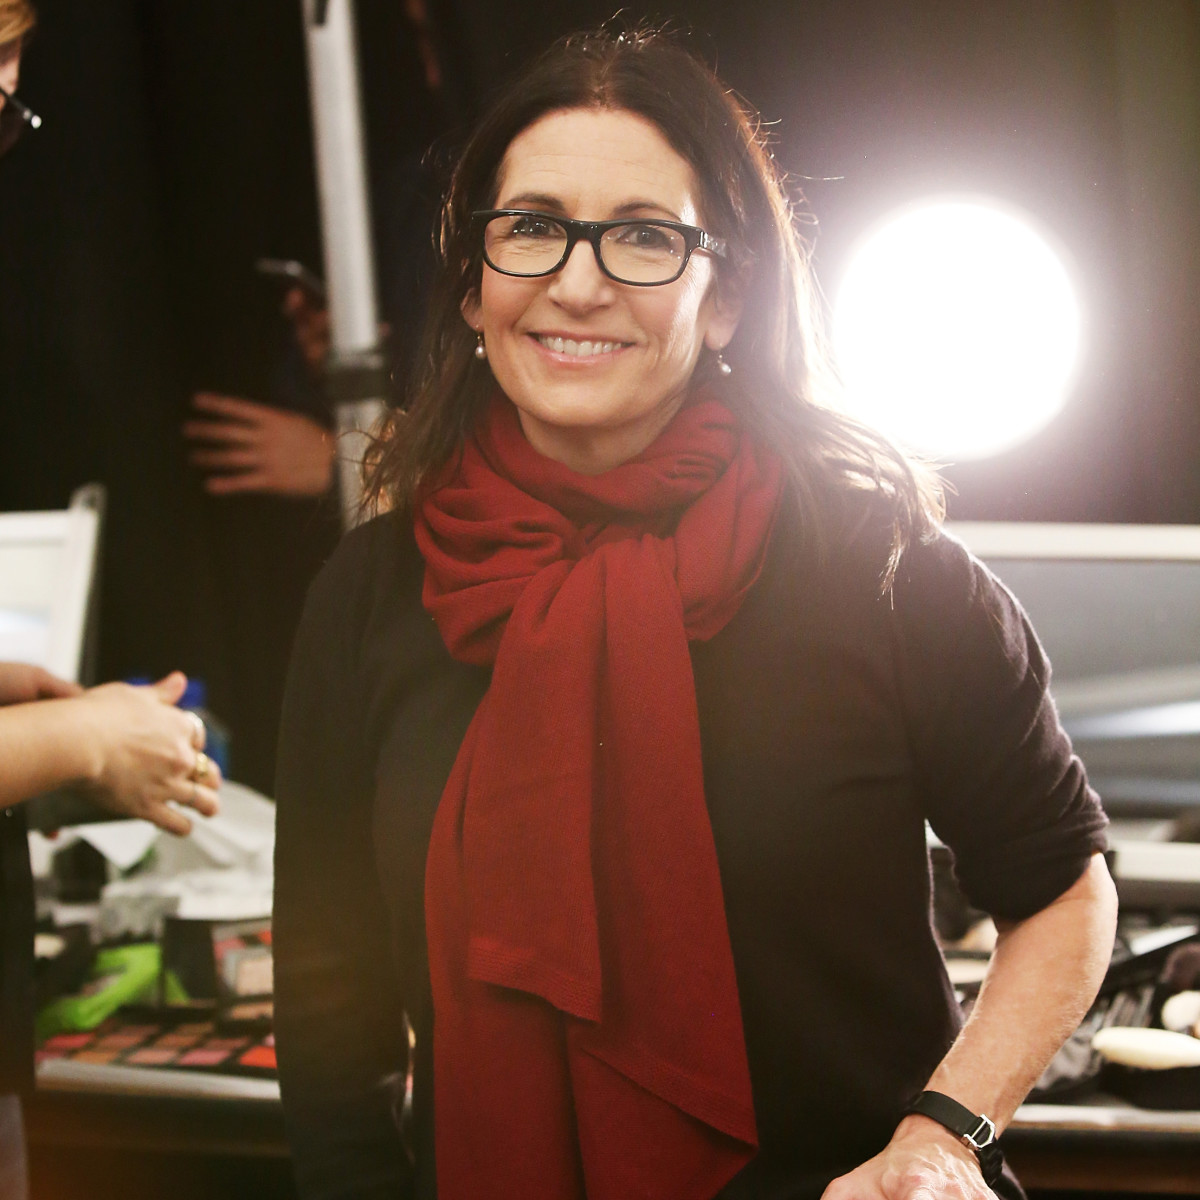 Bobbi Brown backstage at the Marchesa show on Wednesday. Photo: Bennett Raglin/Getty Images